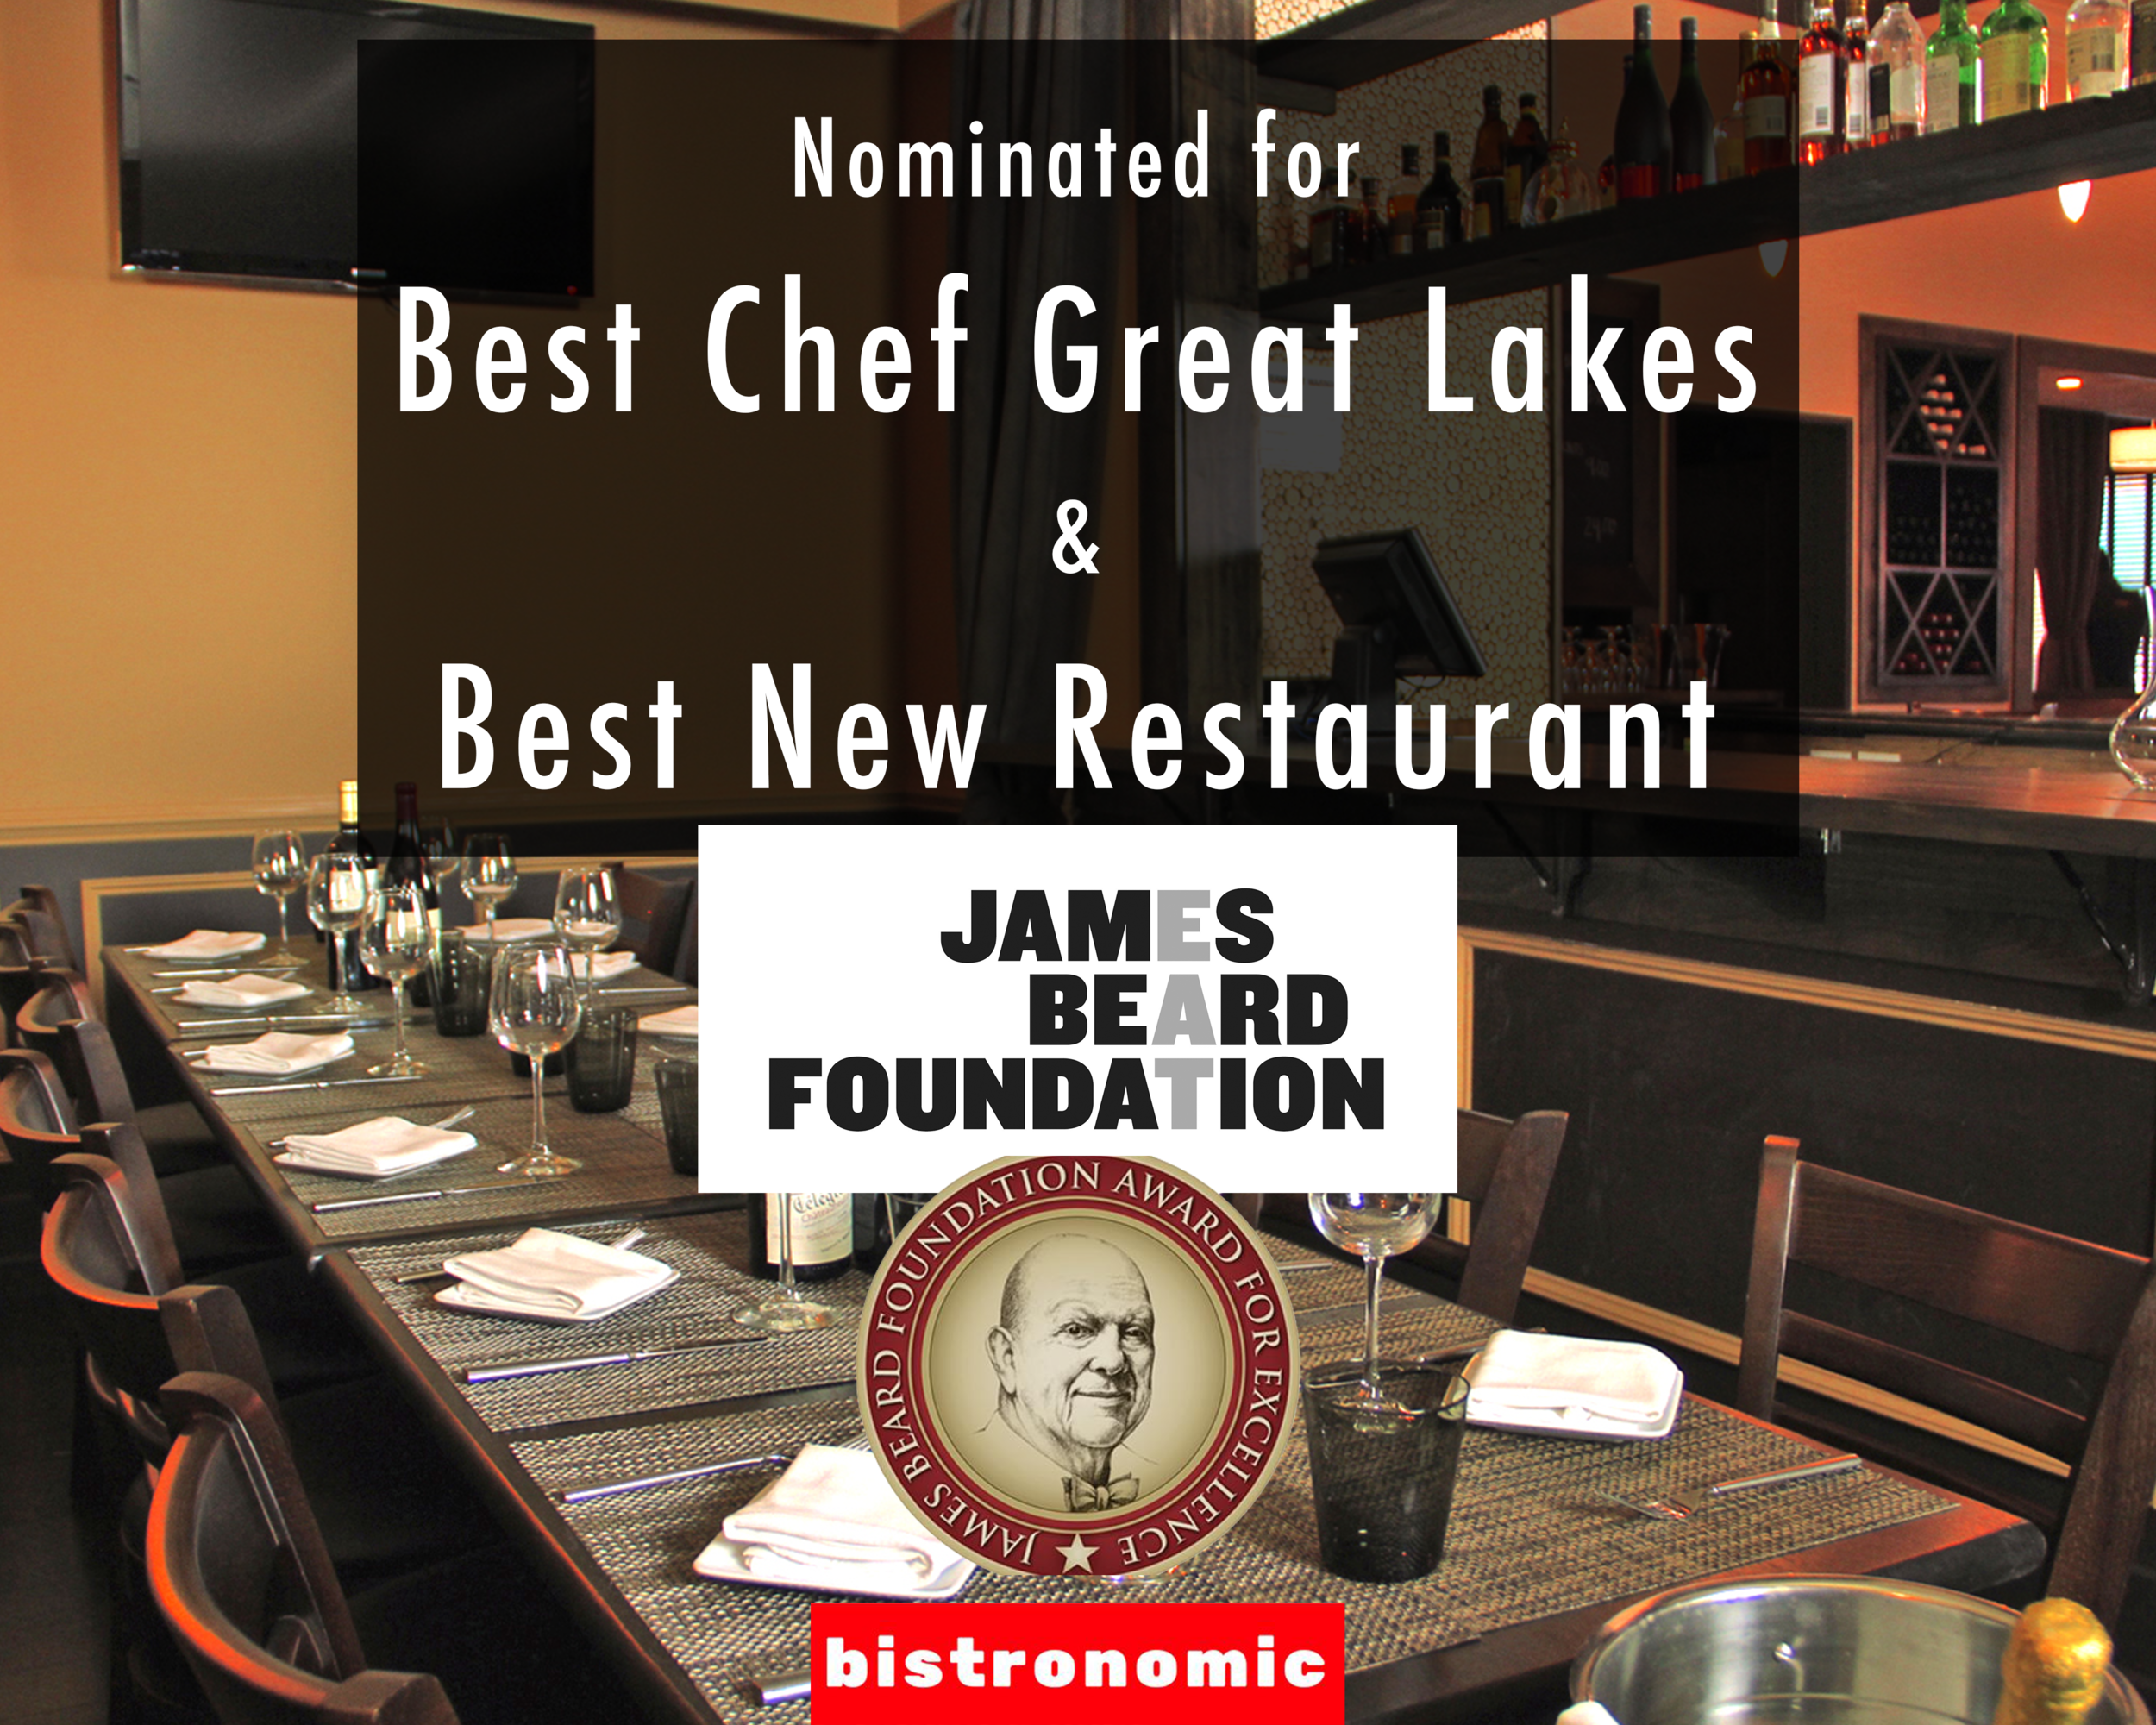 james beard award.png